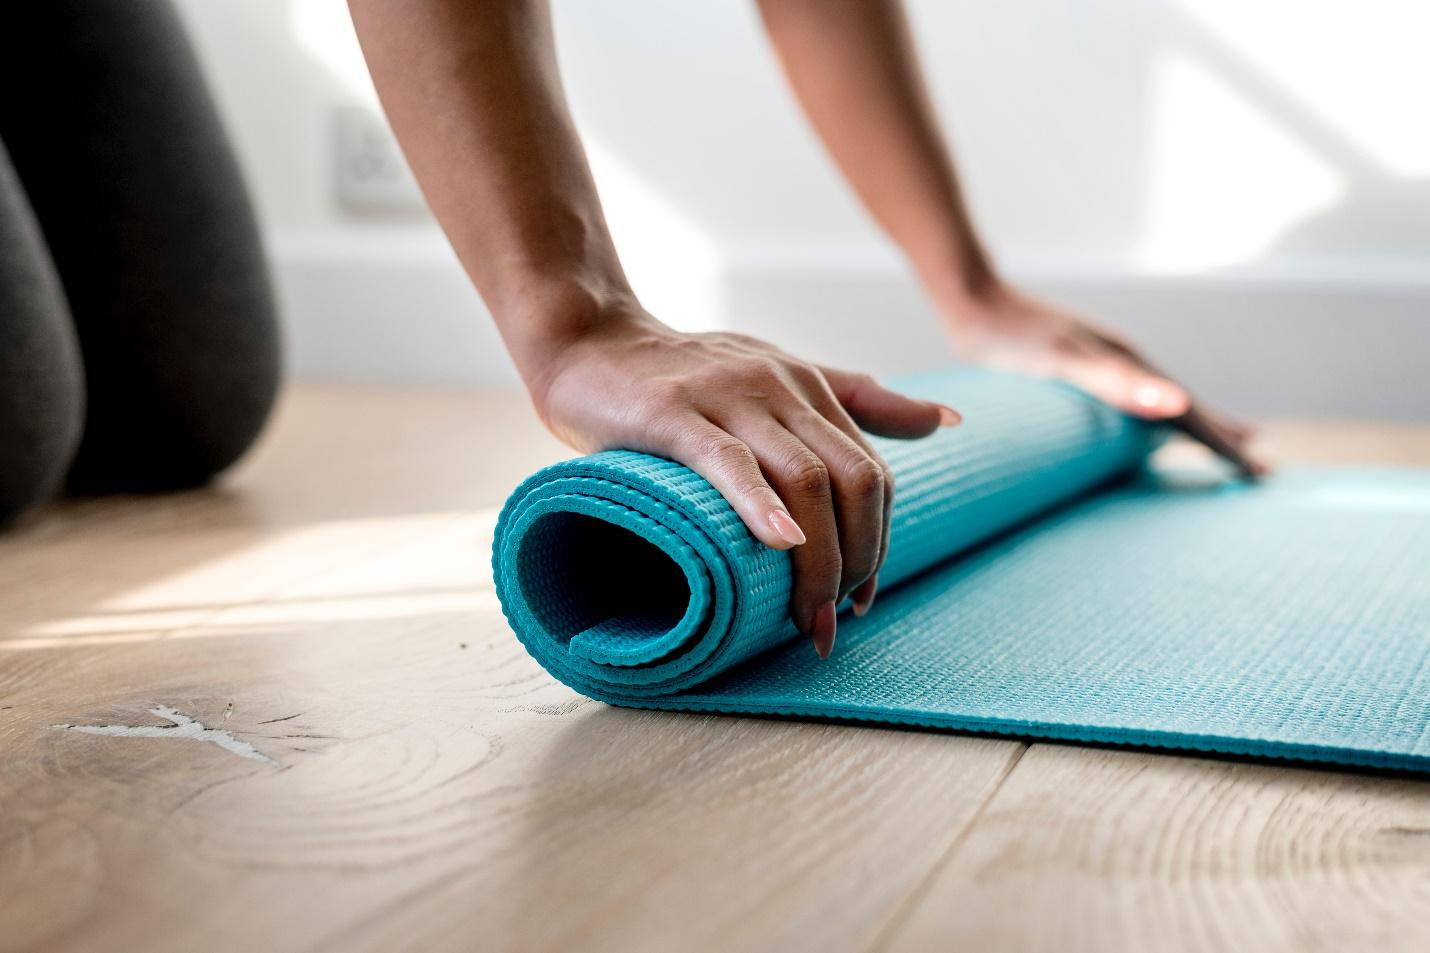 Workout mats/yoga mats